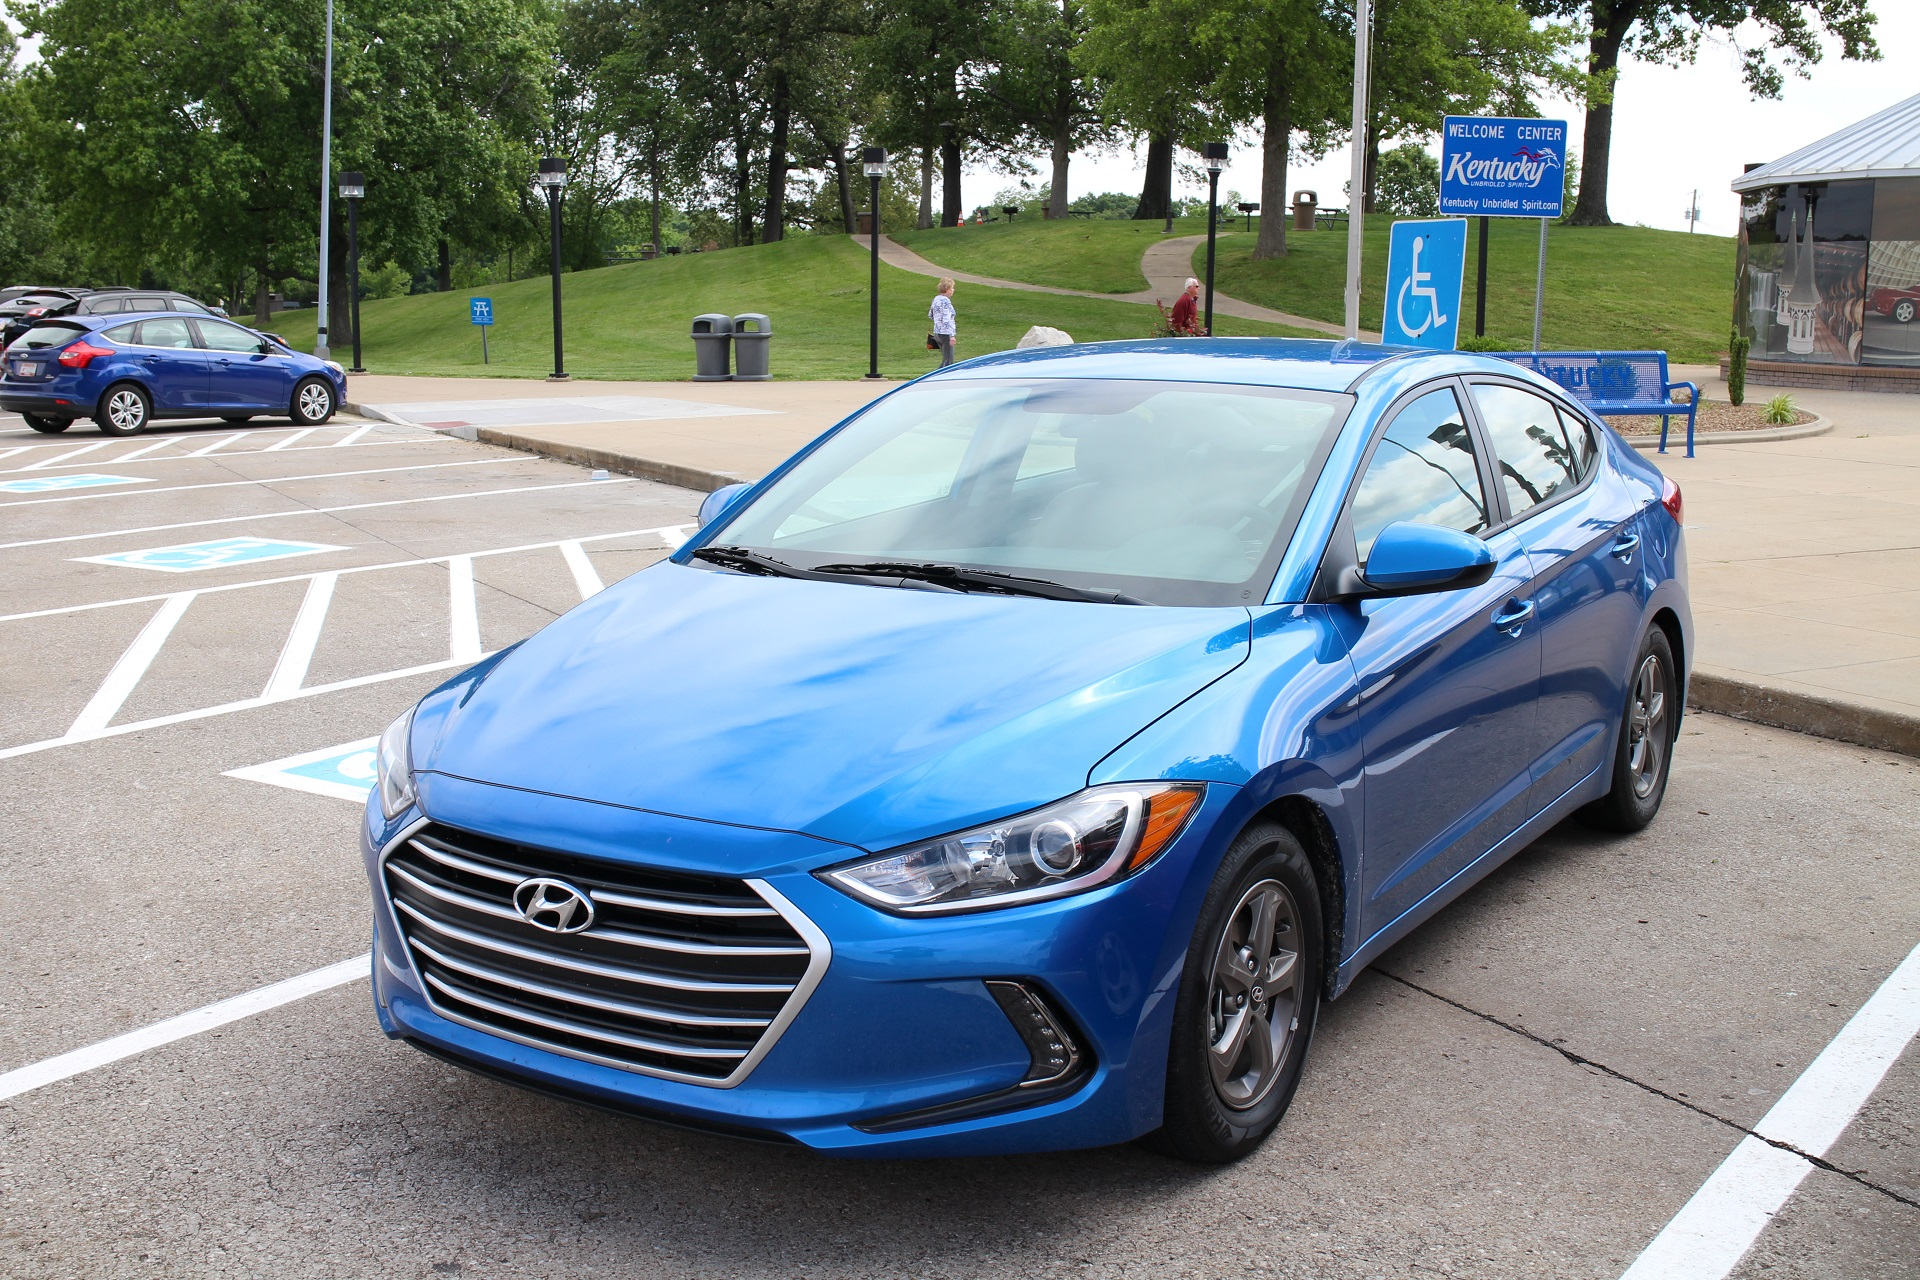 2017 Hyundai Elantra Eco Road Trip May 2016 100558021 H Jpg